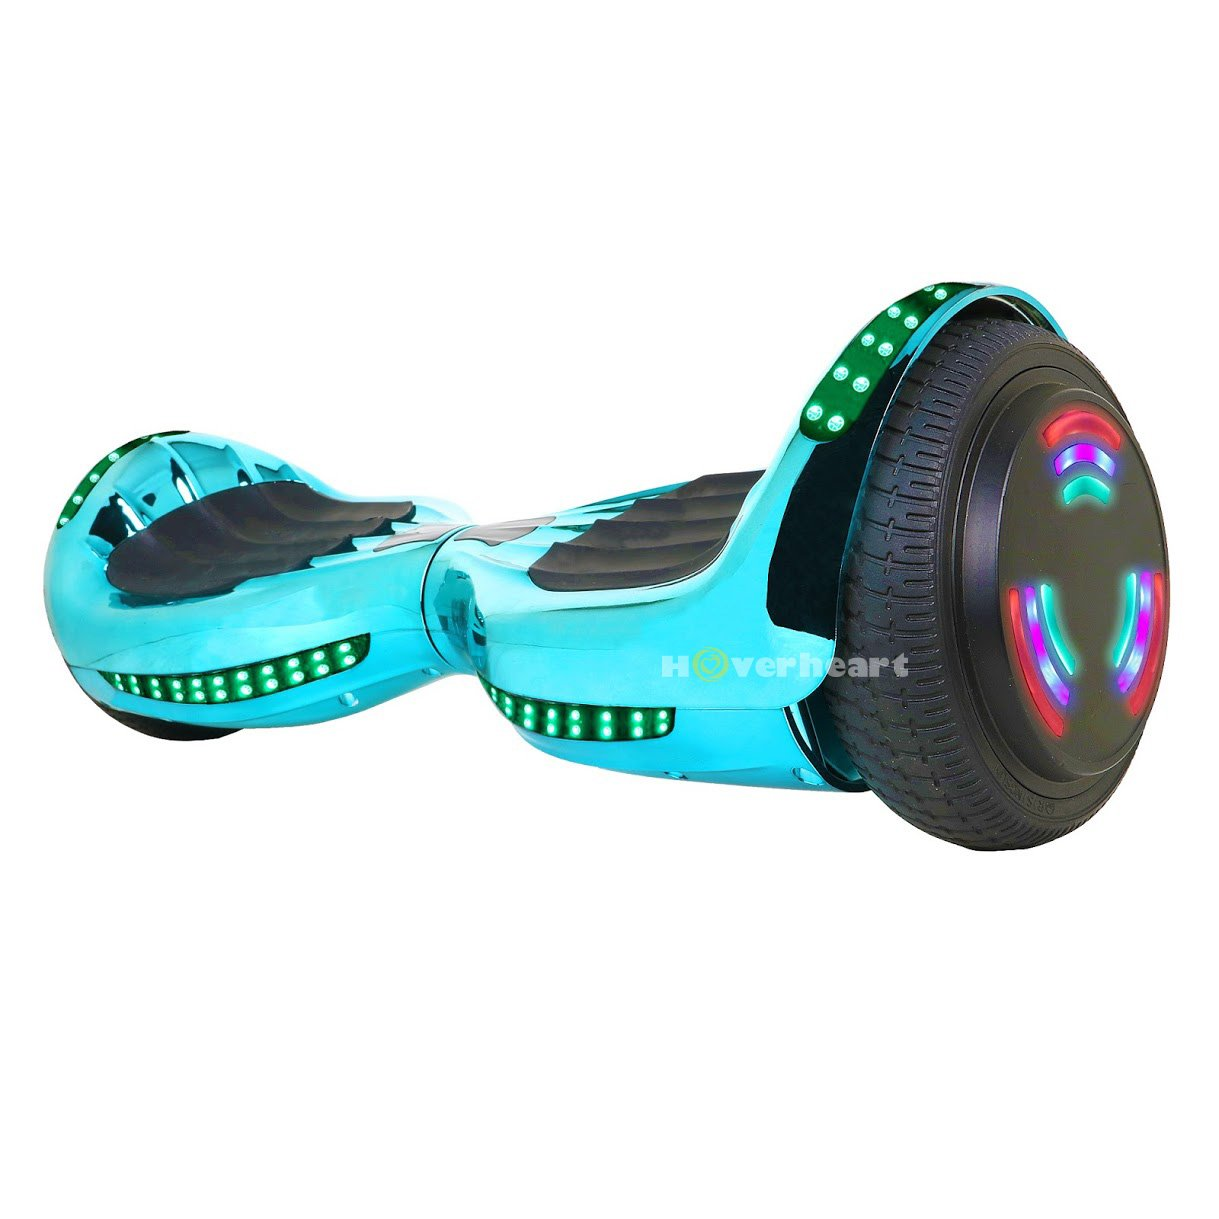 Hoverboard UL 2272 Certified Flash Wheel 6.5'' Bluetooth Speaker with LED Light Self Balancing Wheel Electric Scooter (Chrome Turquoise) by Hoverheart